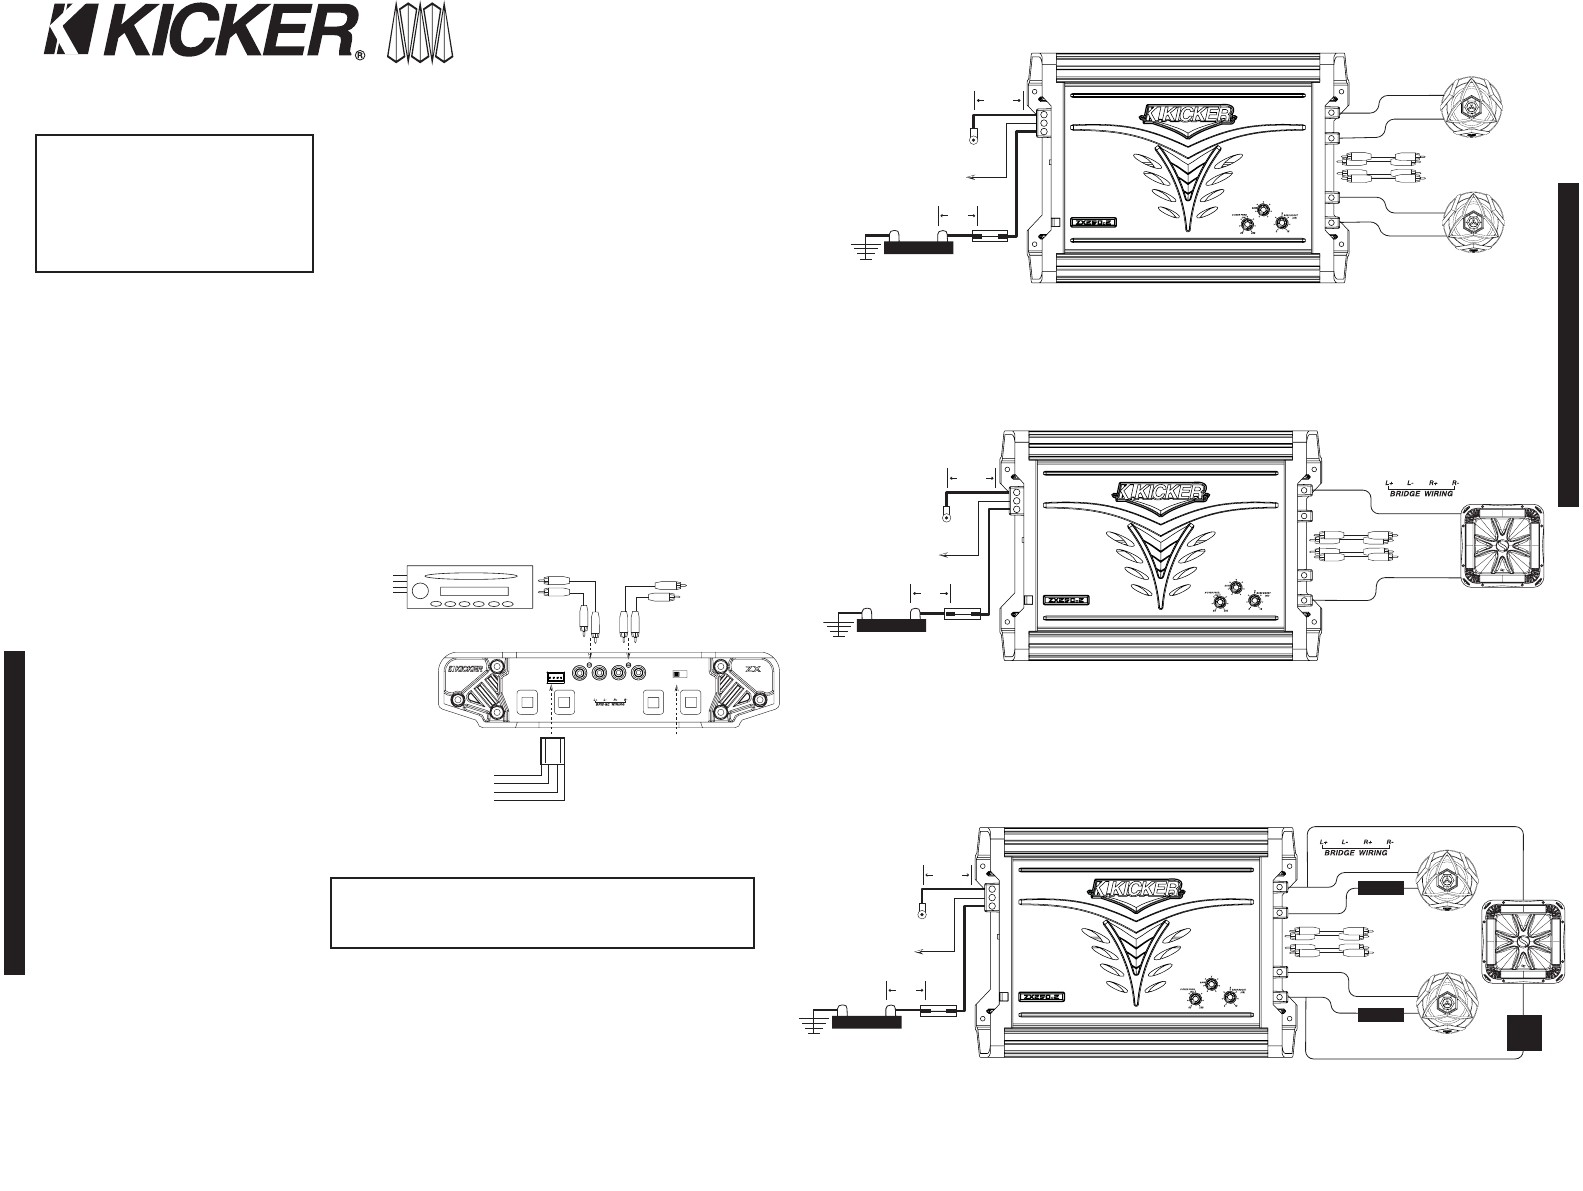 kicker kisl wiring diagram raspberry pi relay solo baric l7 new image